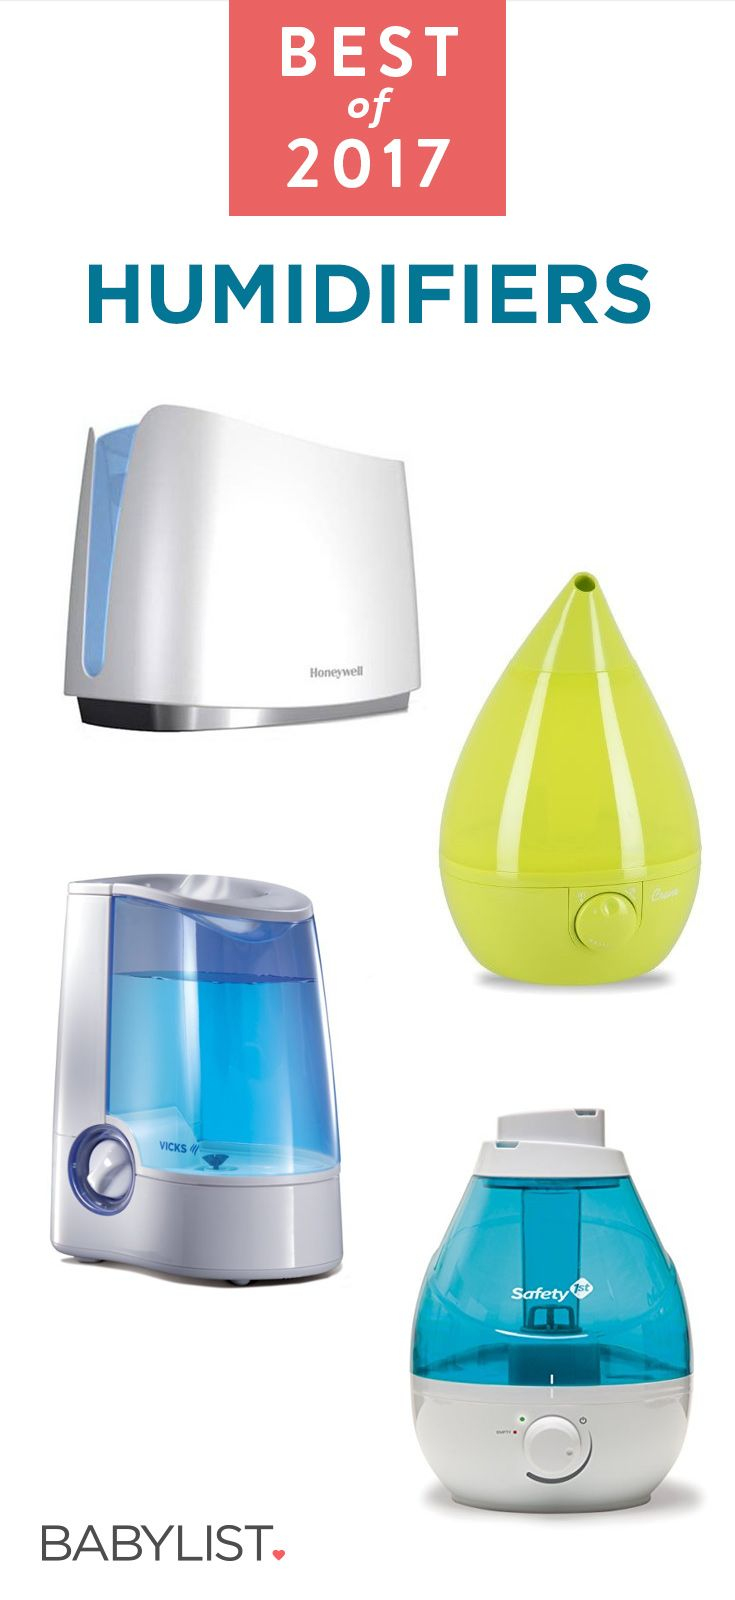 Which air humidifier is best for the baby Humidifiers: Overview